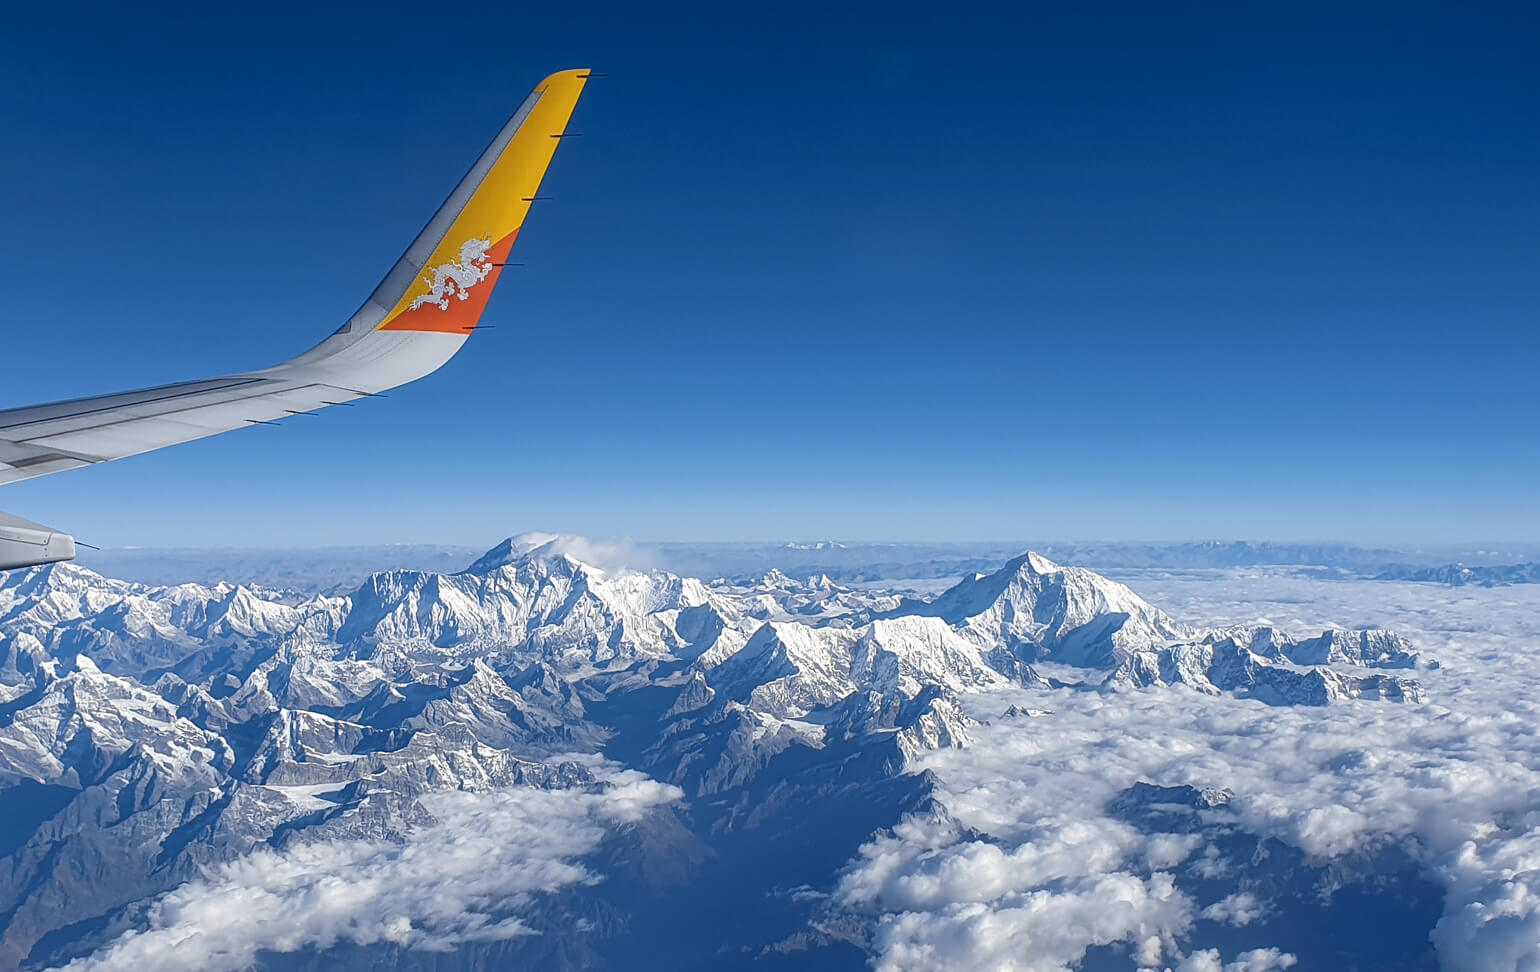 The Himalayas including Mount Everest.